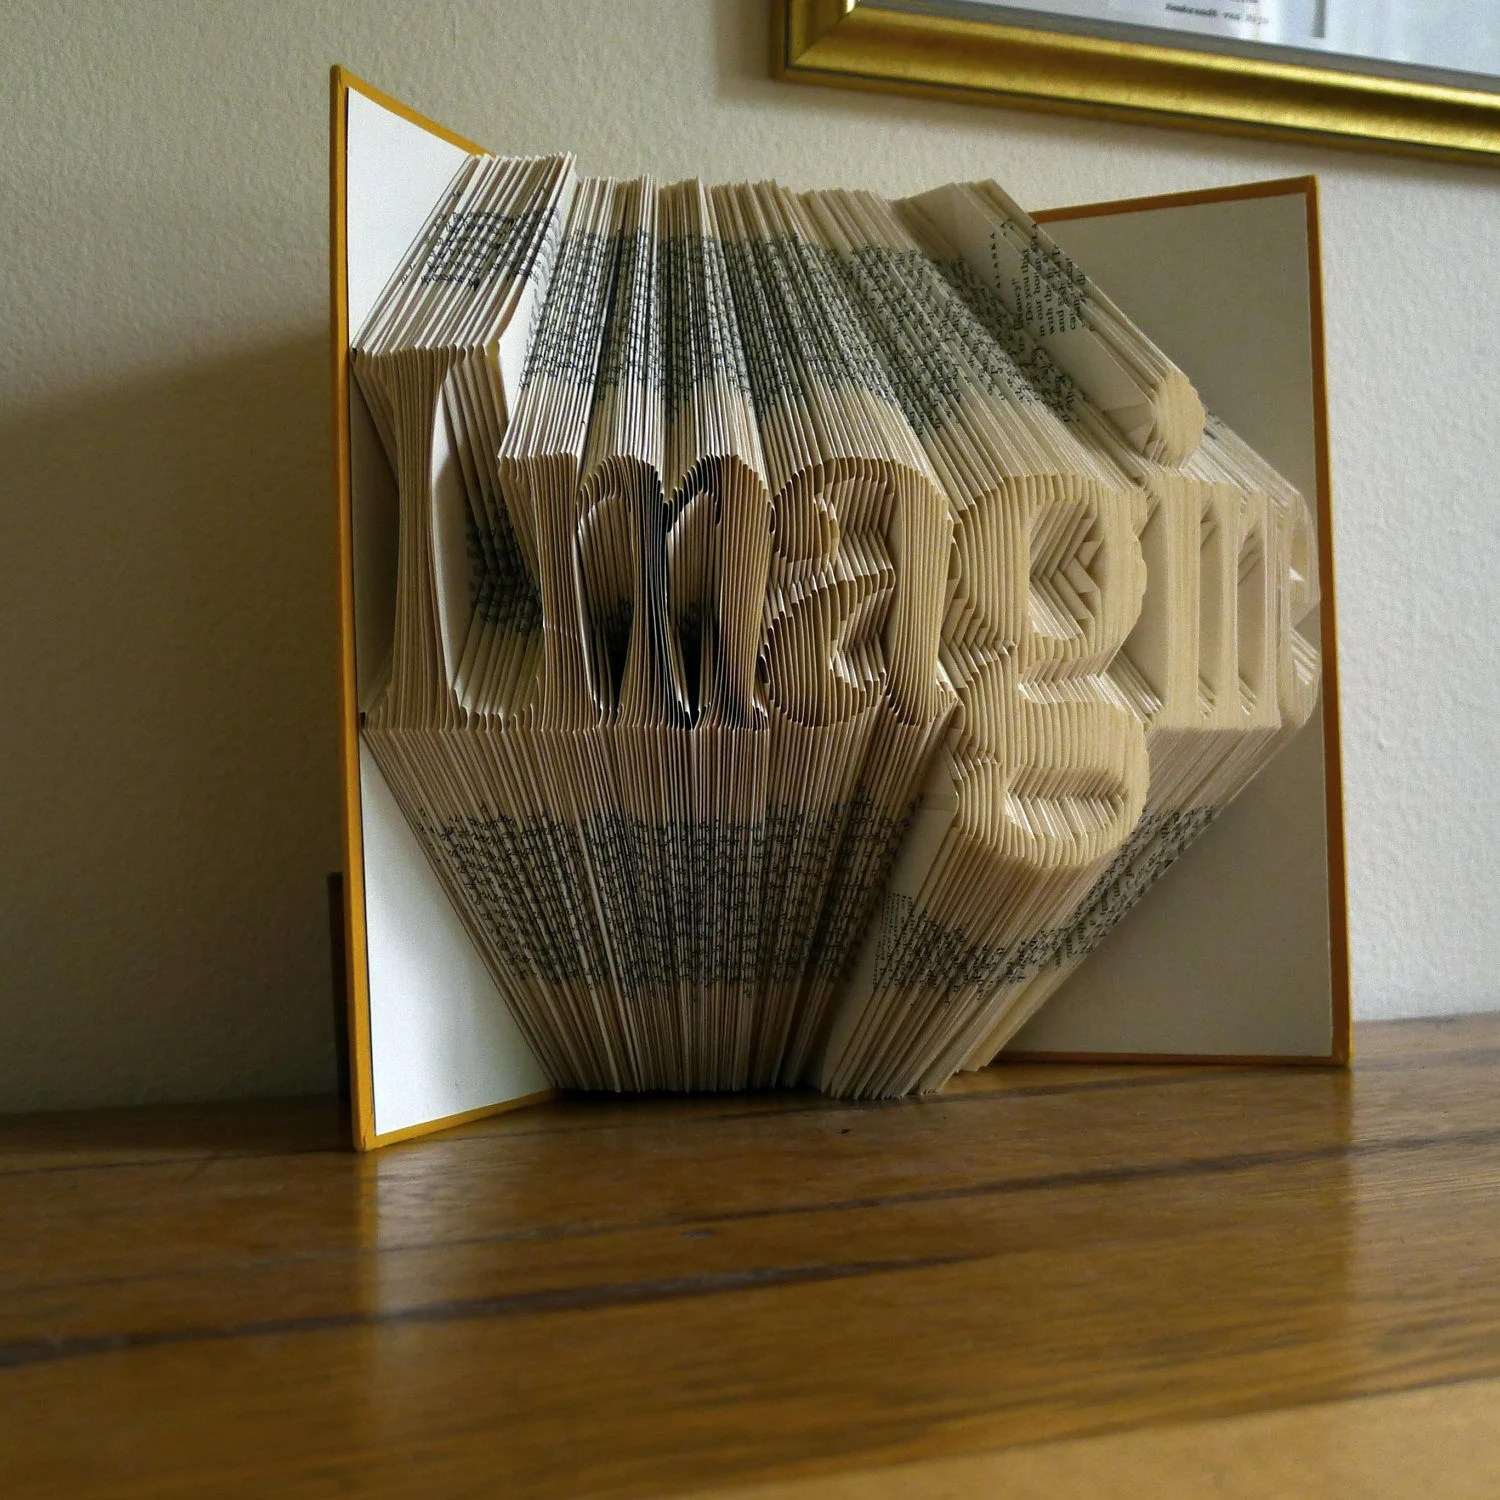 Folded Book Art Sculpture - Anniversary Gifts - Boyfriend - Unique Wedding Gift - Imagine - Your Choice of Words - Great Gift...